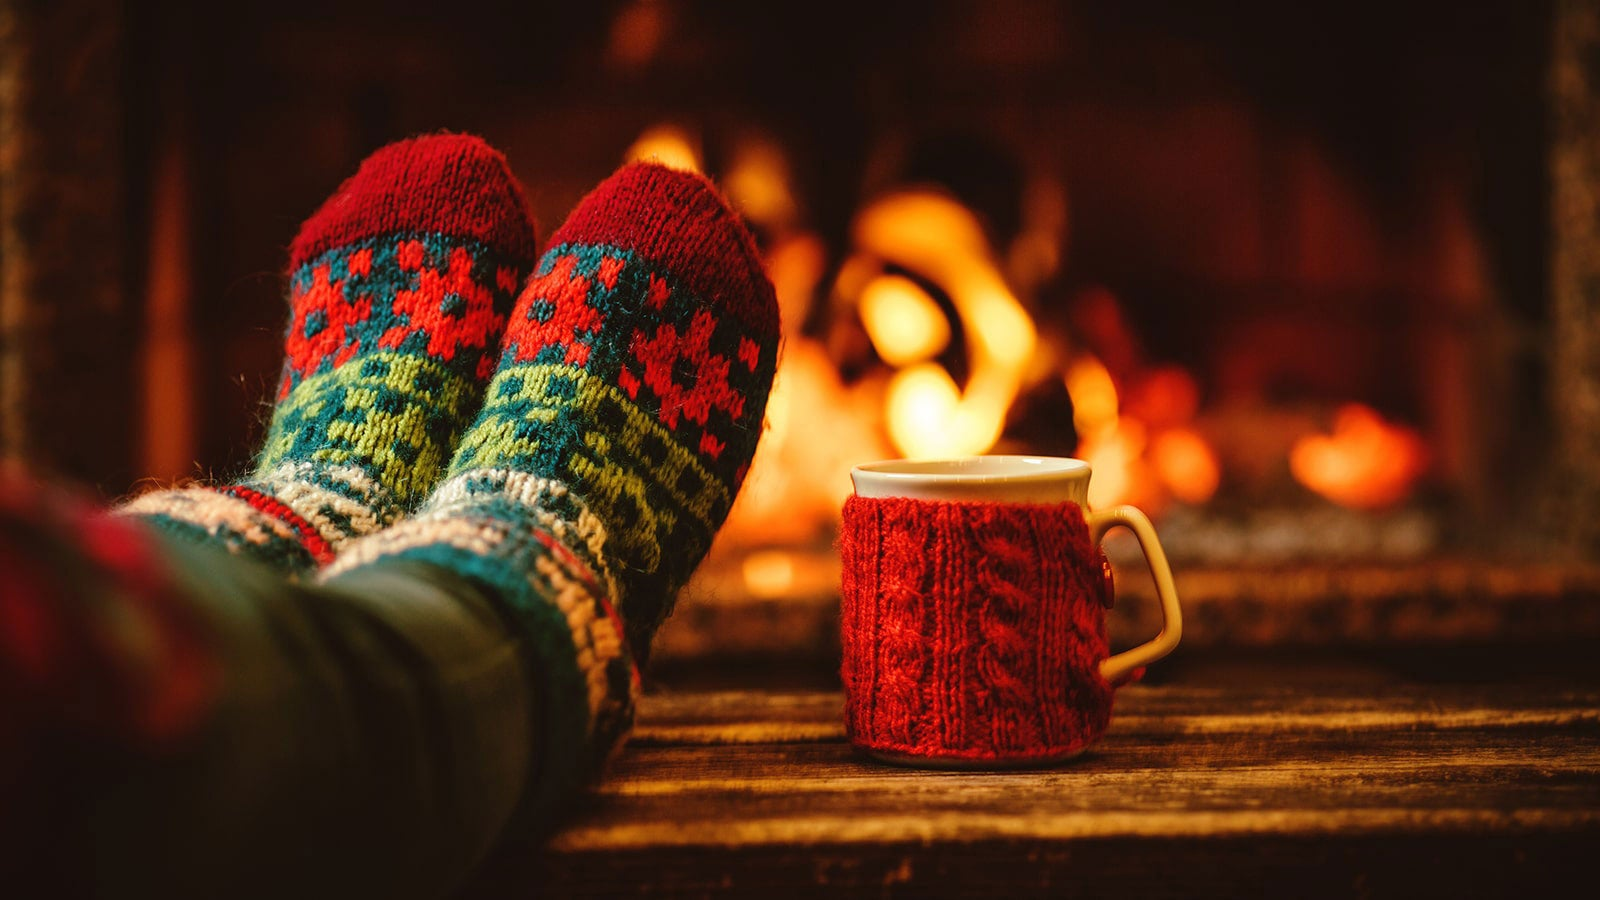 A pair of feet in warm Christmassy socks, beside a mug wrapped in cosy, both in front of a roaring fire.